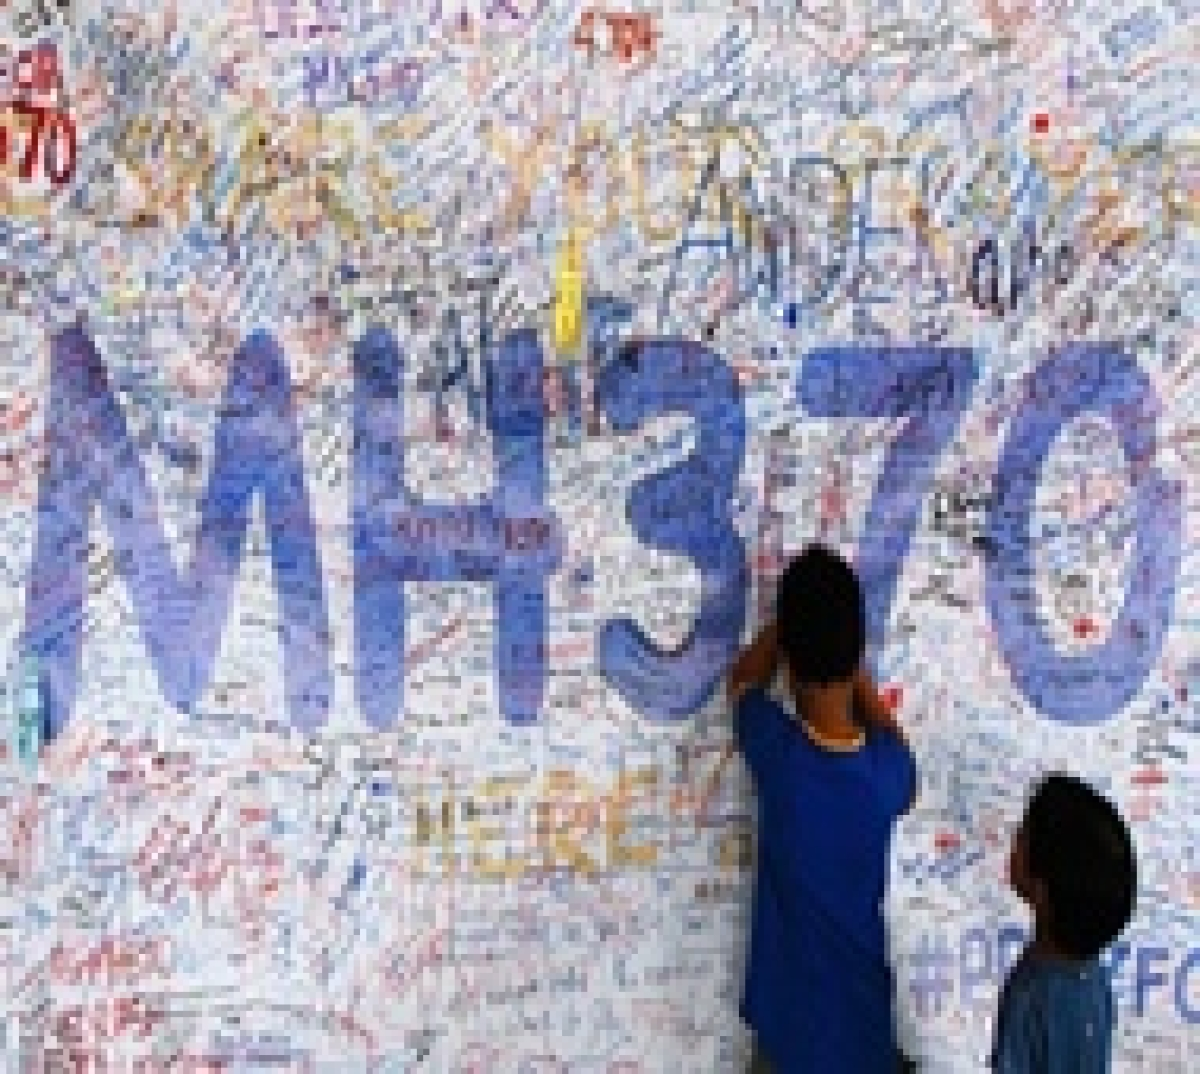 Wild weather delays completion of MH370 search